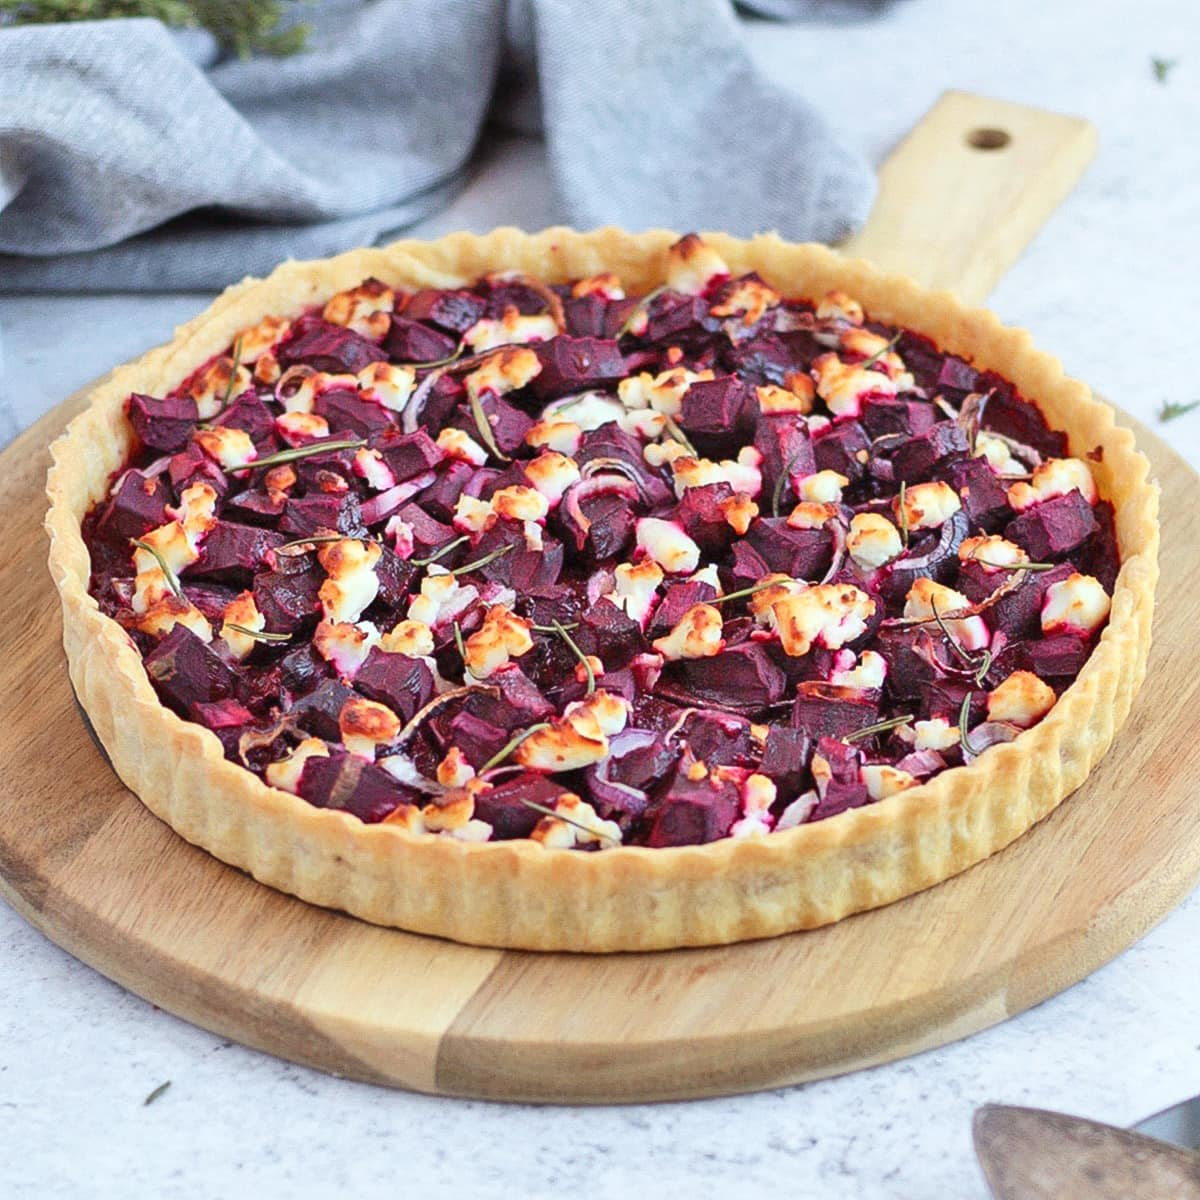 Savory Tart on a round wooden board